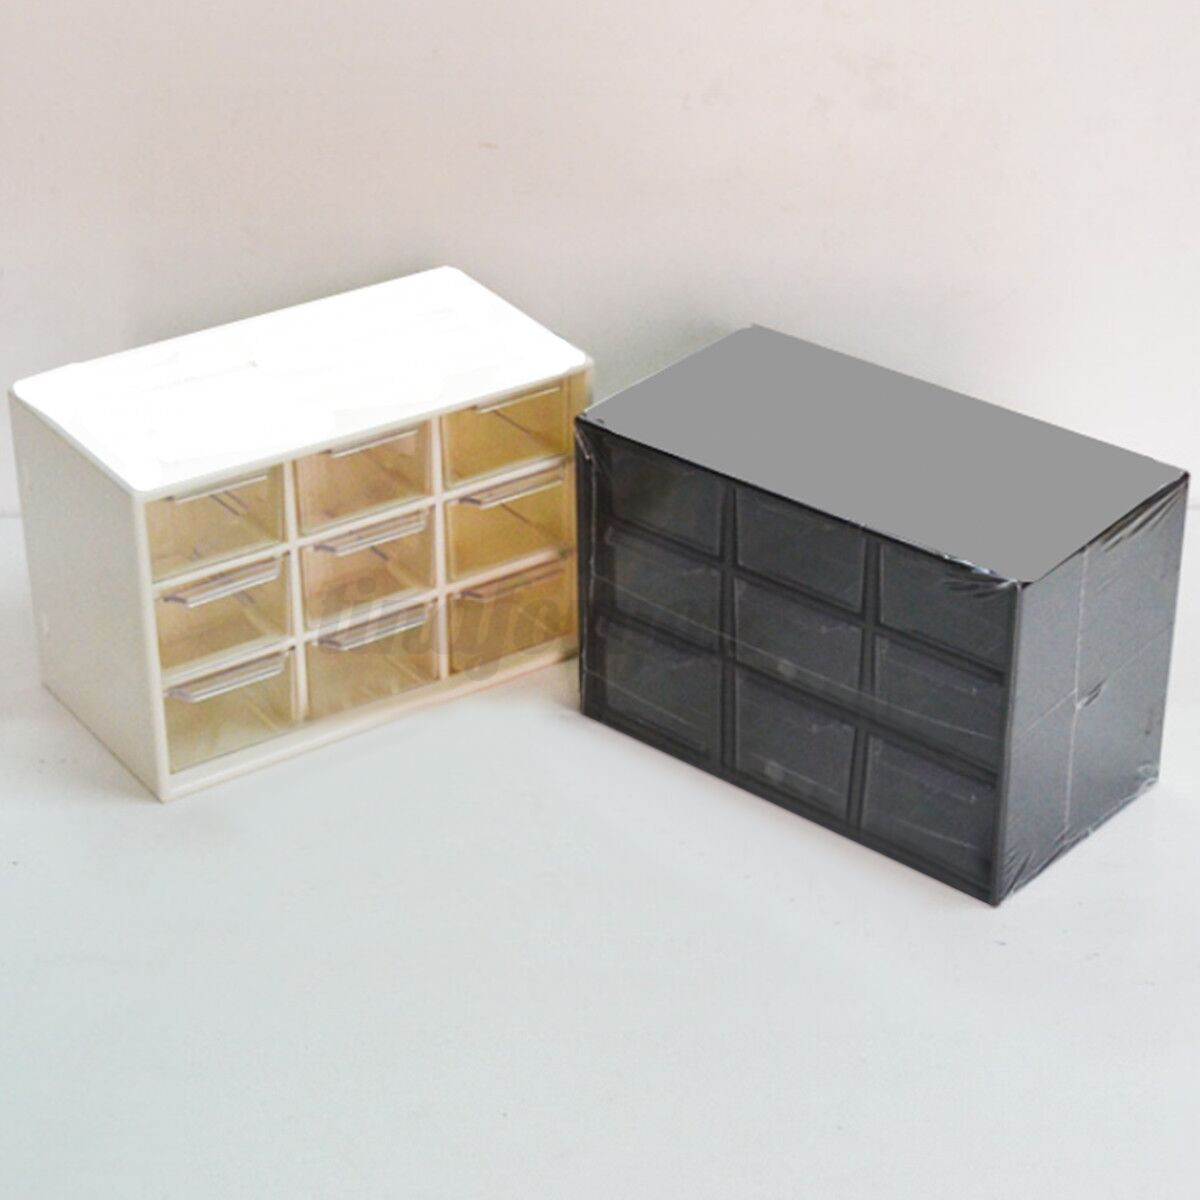 Plastic 9 lattice portable mini debris cabinets amall - Porta poster plexiglass ...